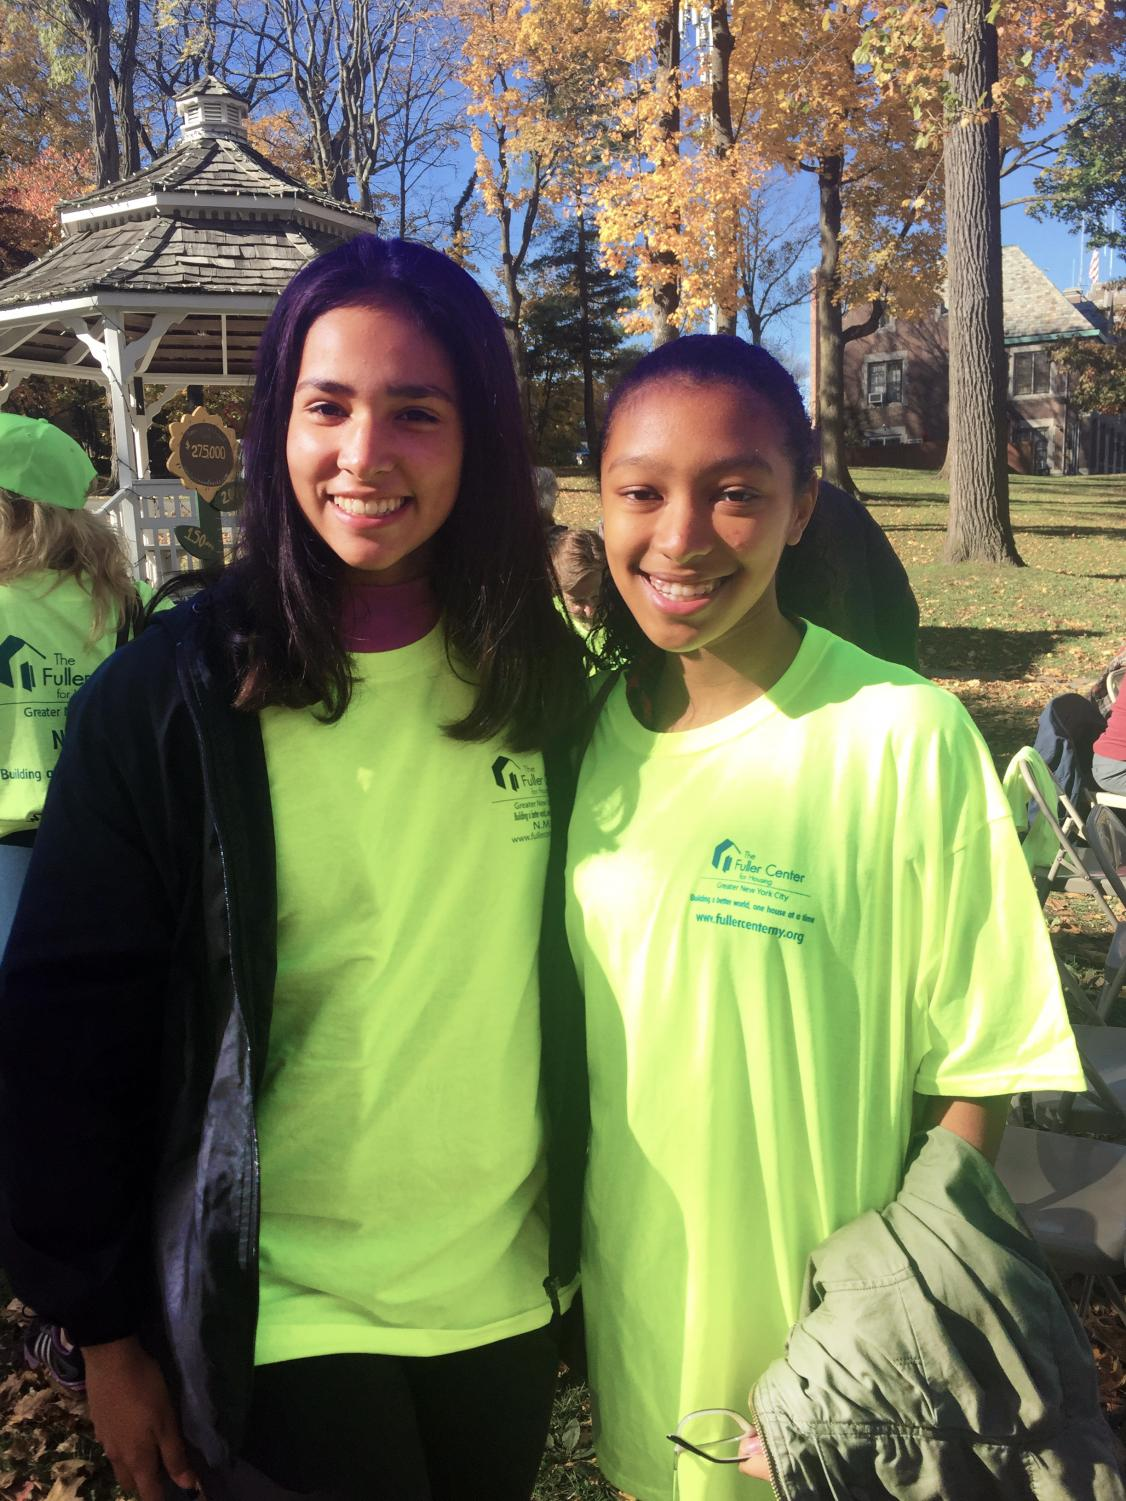 At the Walk for Homes, freshman Caroline Michailoff (l) and sophomore Nadine Leesang (r) help raise money for the homeless.